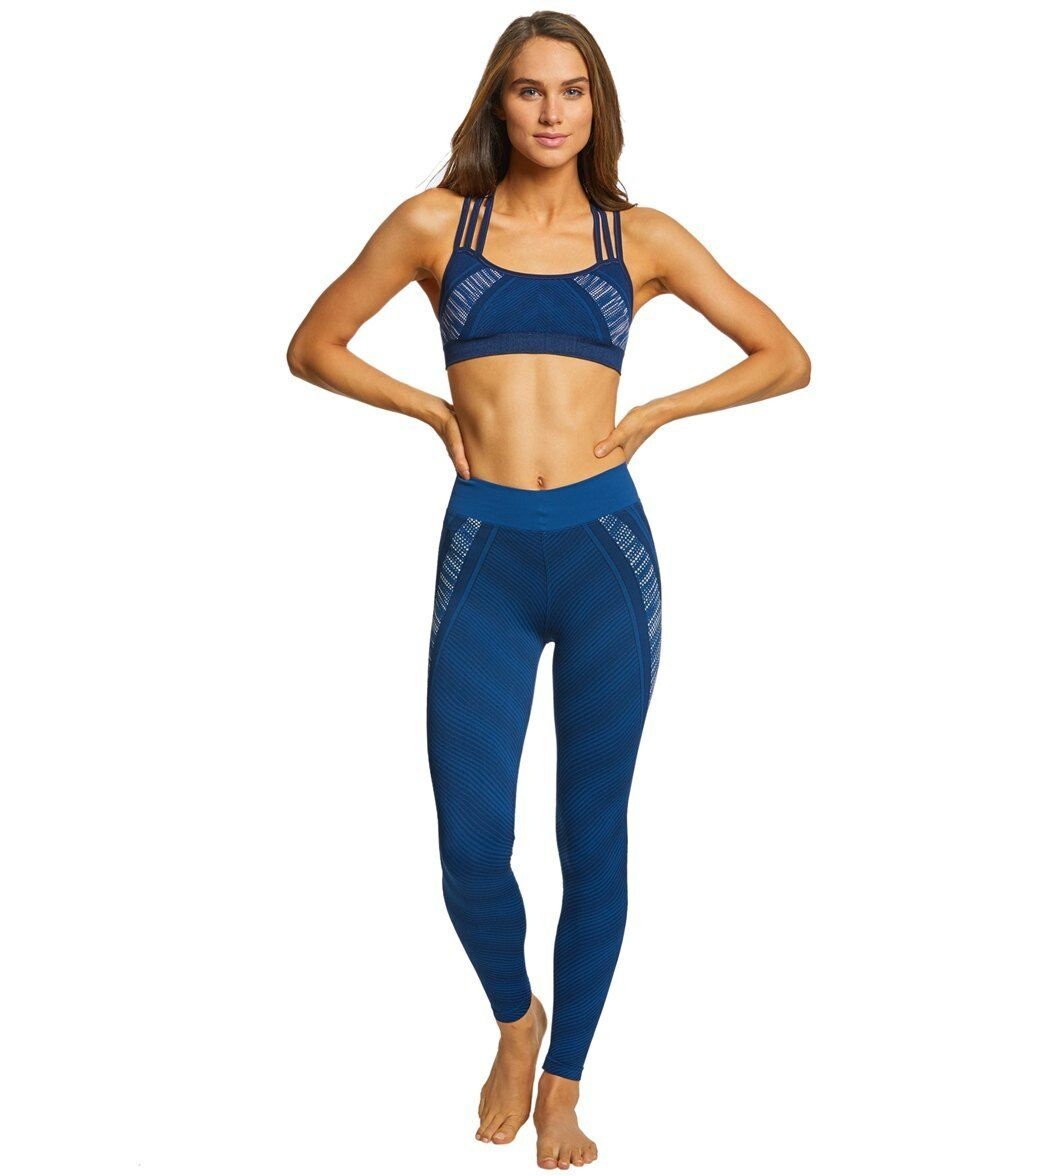 Blau Leggings Yoga Set Top Bottom NUX In A Row Leggings Blau Yoga Running Small NWT 0817c9